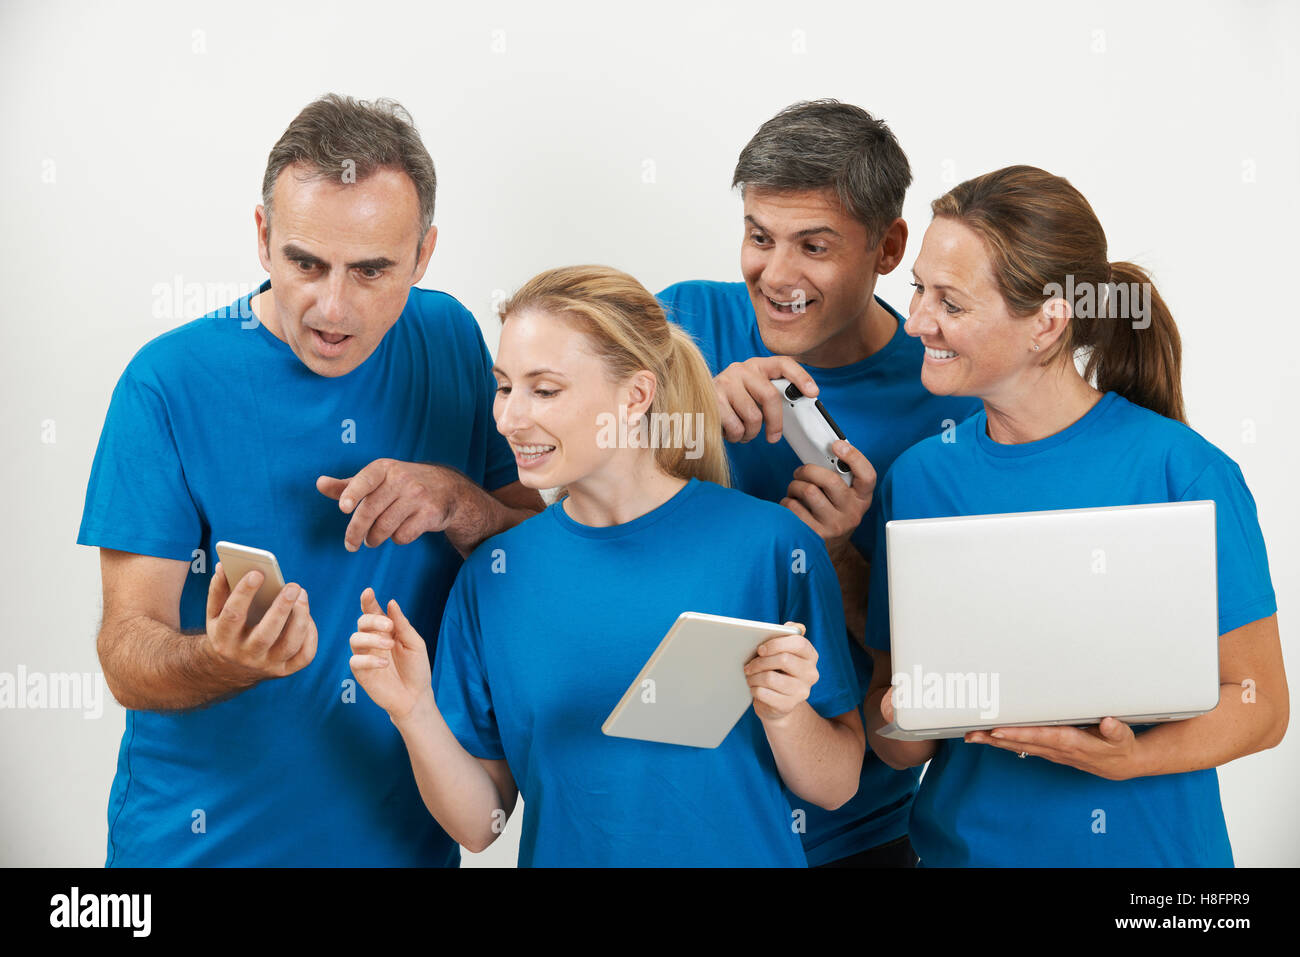 Sales Team Wearing Uniform With Selection Of Techno Gadgets - Stock Image